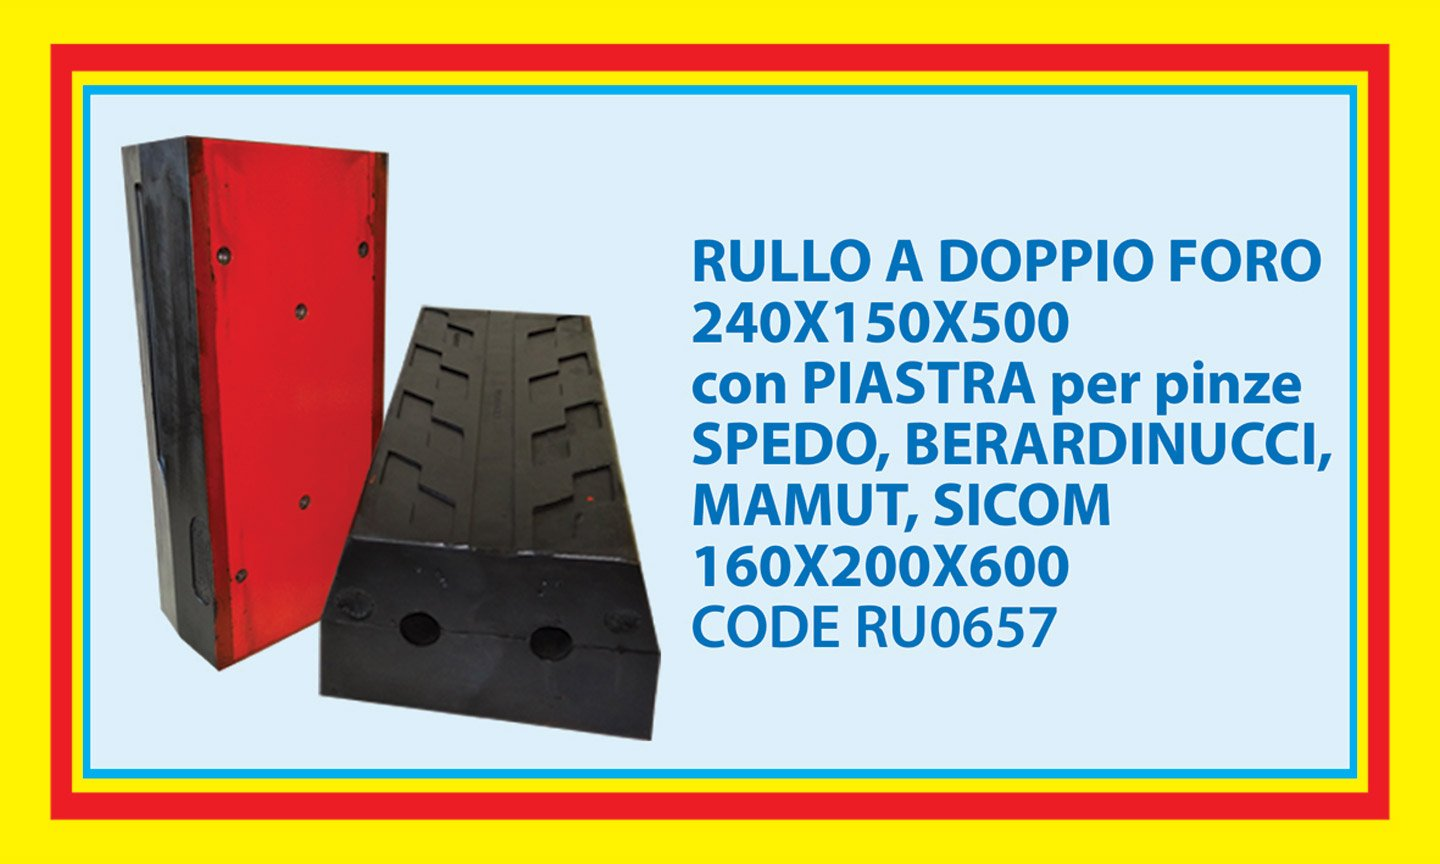 roll with two holes and plate for SPEDO gripper